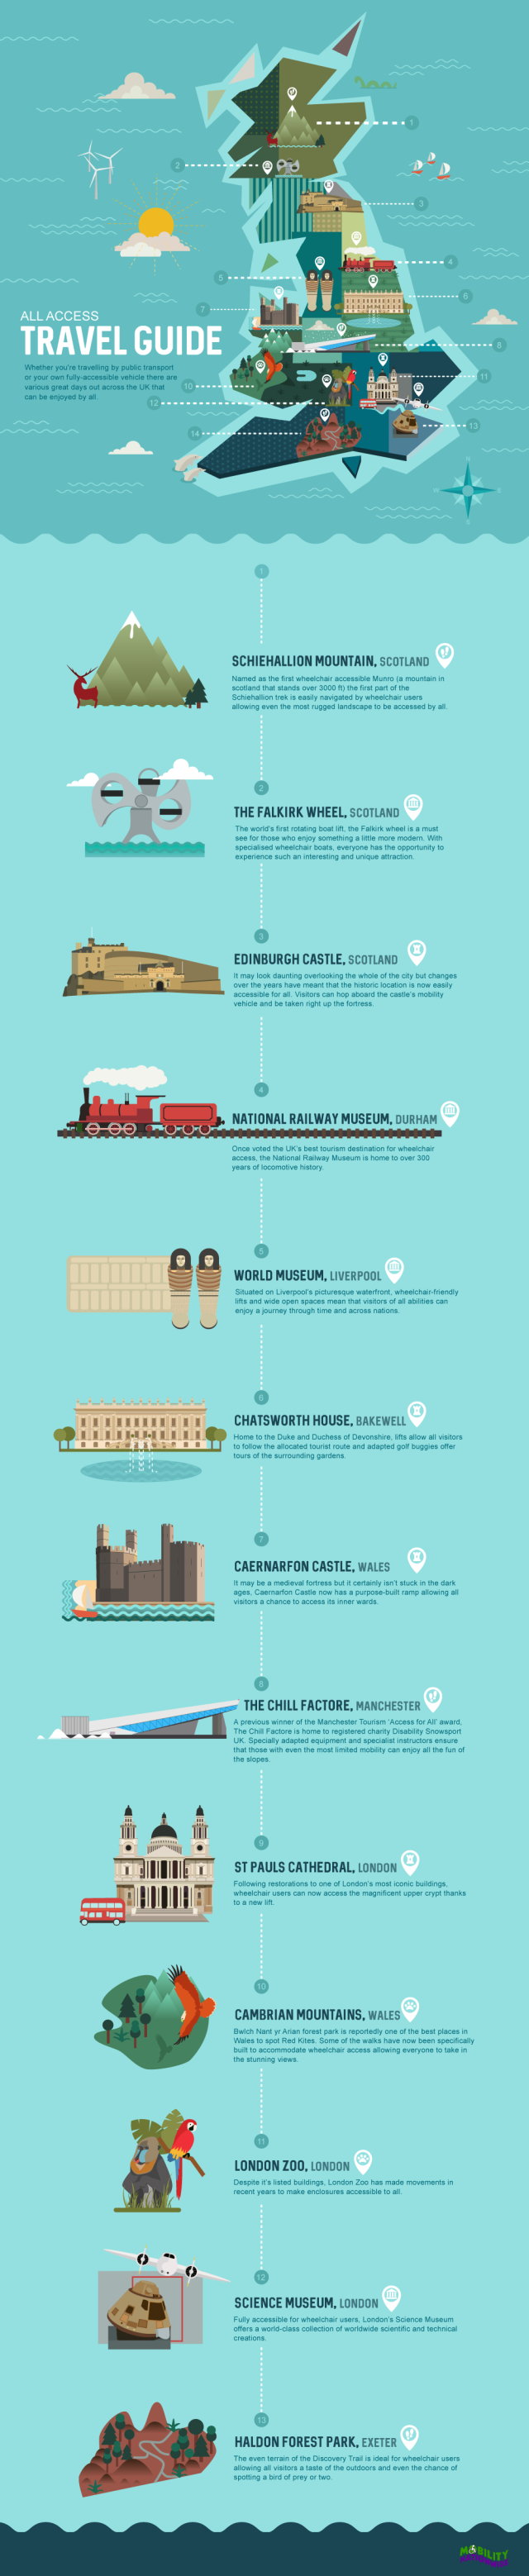 MOBILITY NATIONWIDE FINAL INFOGRAPHIC